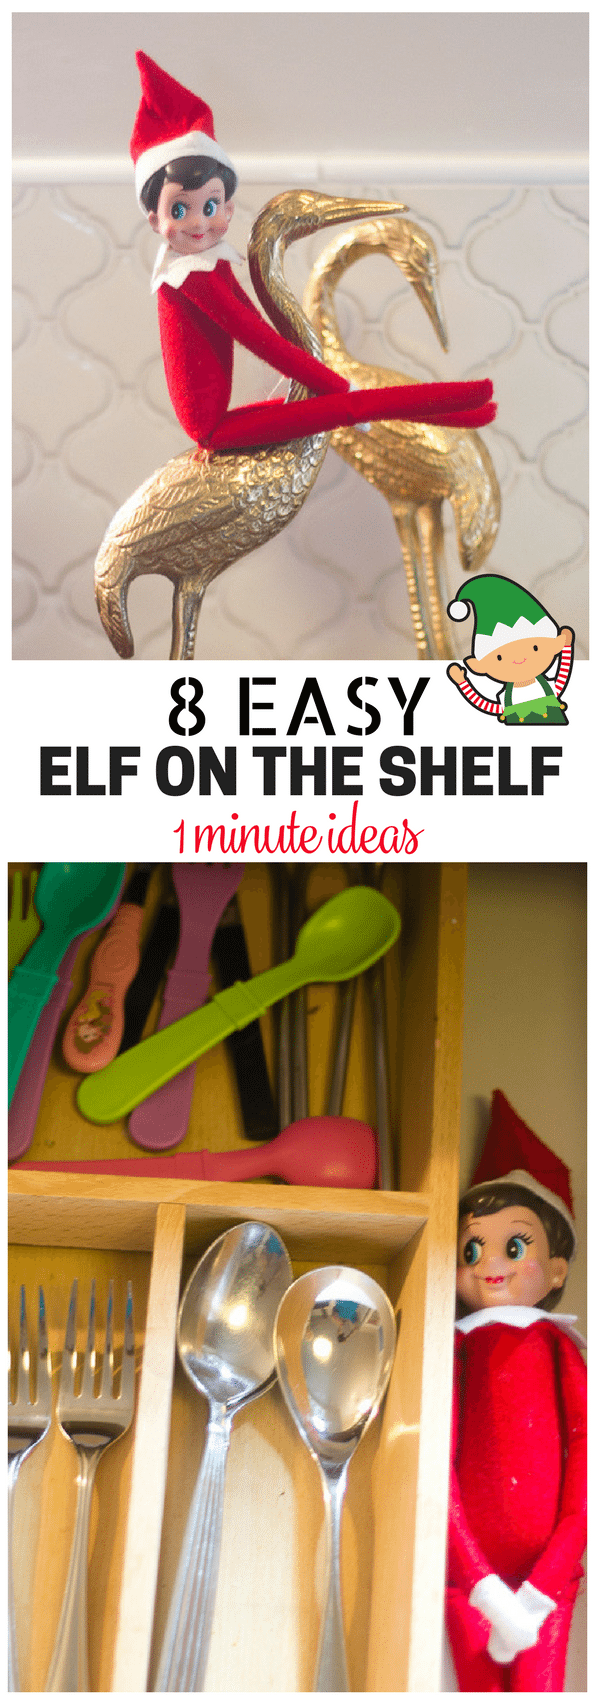 Don't leave your elf in the fruit basket! These easy, versatile and funny elf on the shelf ideas will get you through the season. #christmas #elfontheshelf